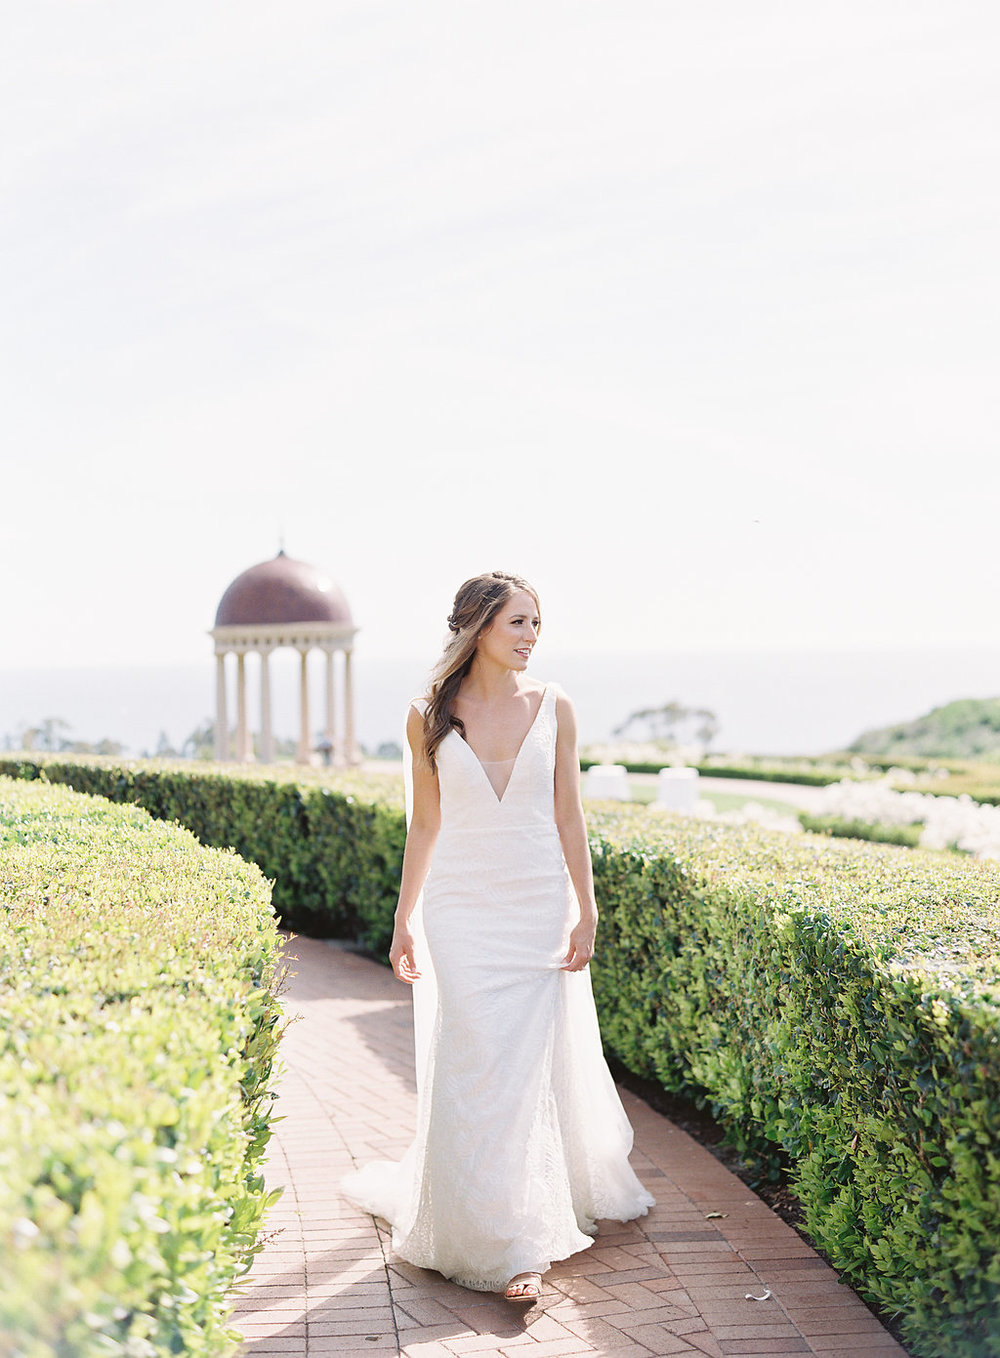 Pelican-Hill-Film-Photographer-Kristina-Adams-107.jpg